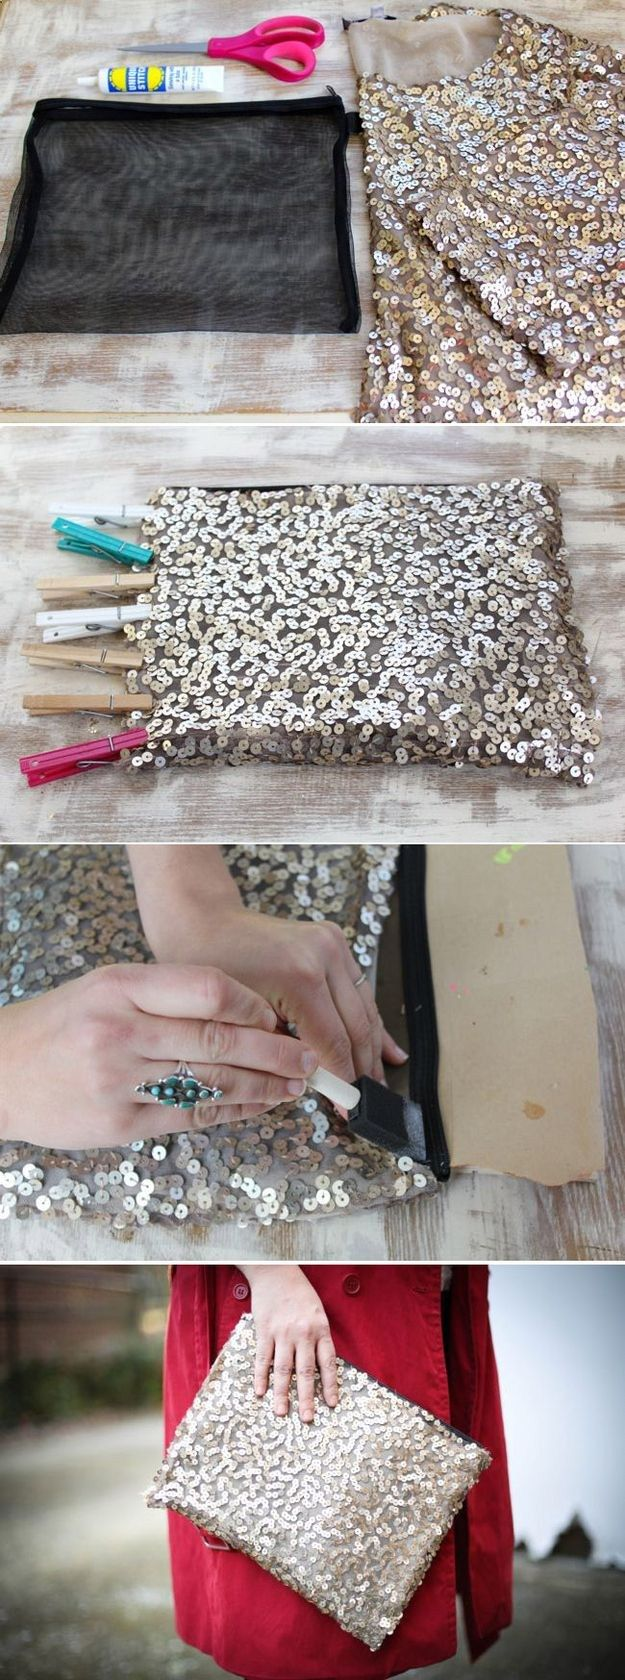 Repurpose a mesh bag to create a no-sew sequined clutch. | 32 DIY Prom Accessories That Will Make You The Coolest Kid InSchool